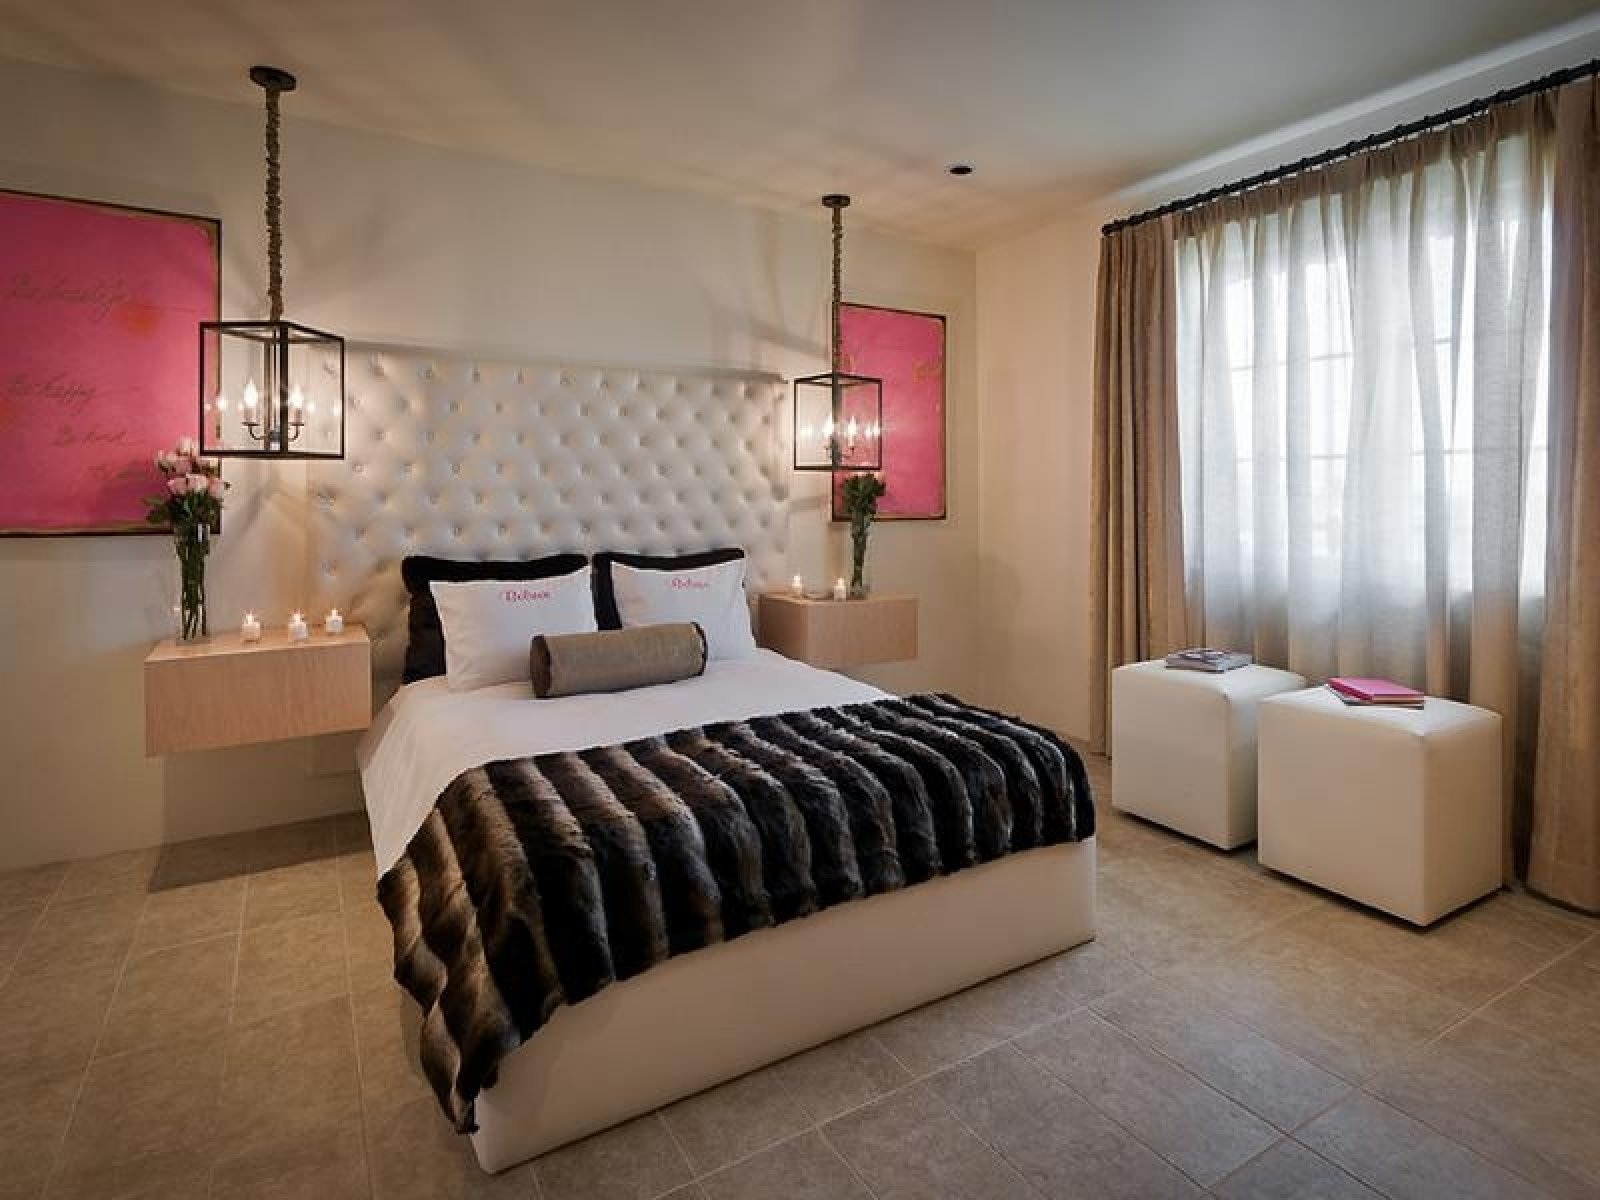 10 Fabulous Bedroom Ideas For Young Adults bedroom theme ideas for adults extraordinary bedroom ideas for young 2021